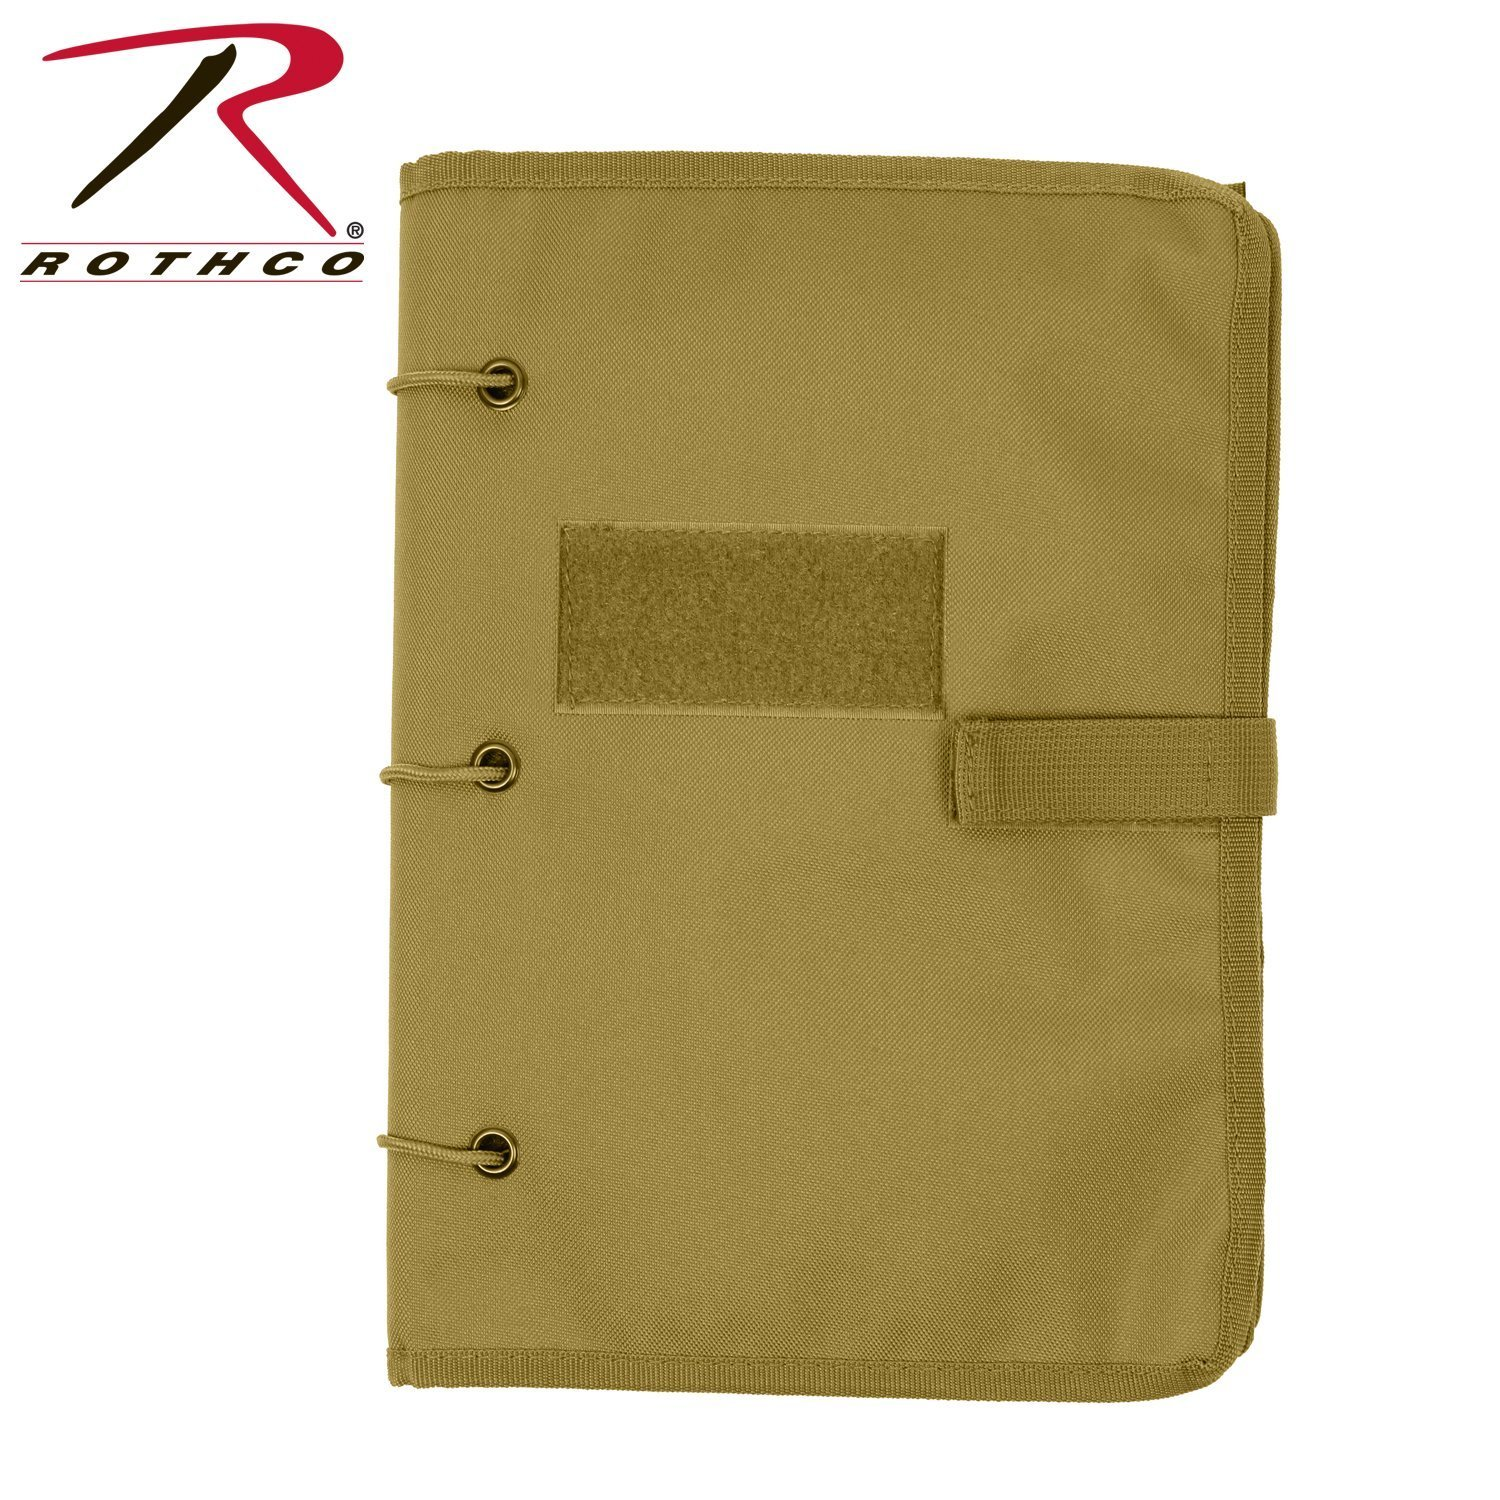 Rothco Hook & Loop Patch Book, Coyote by Rothco